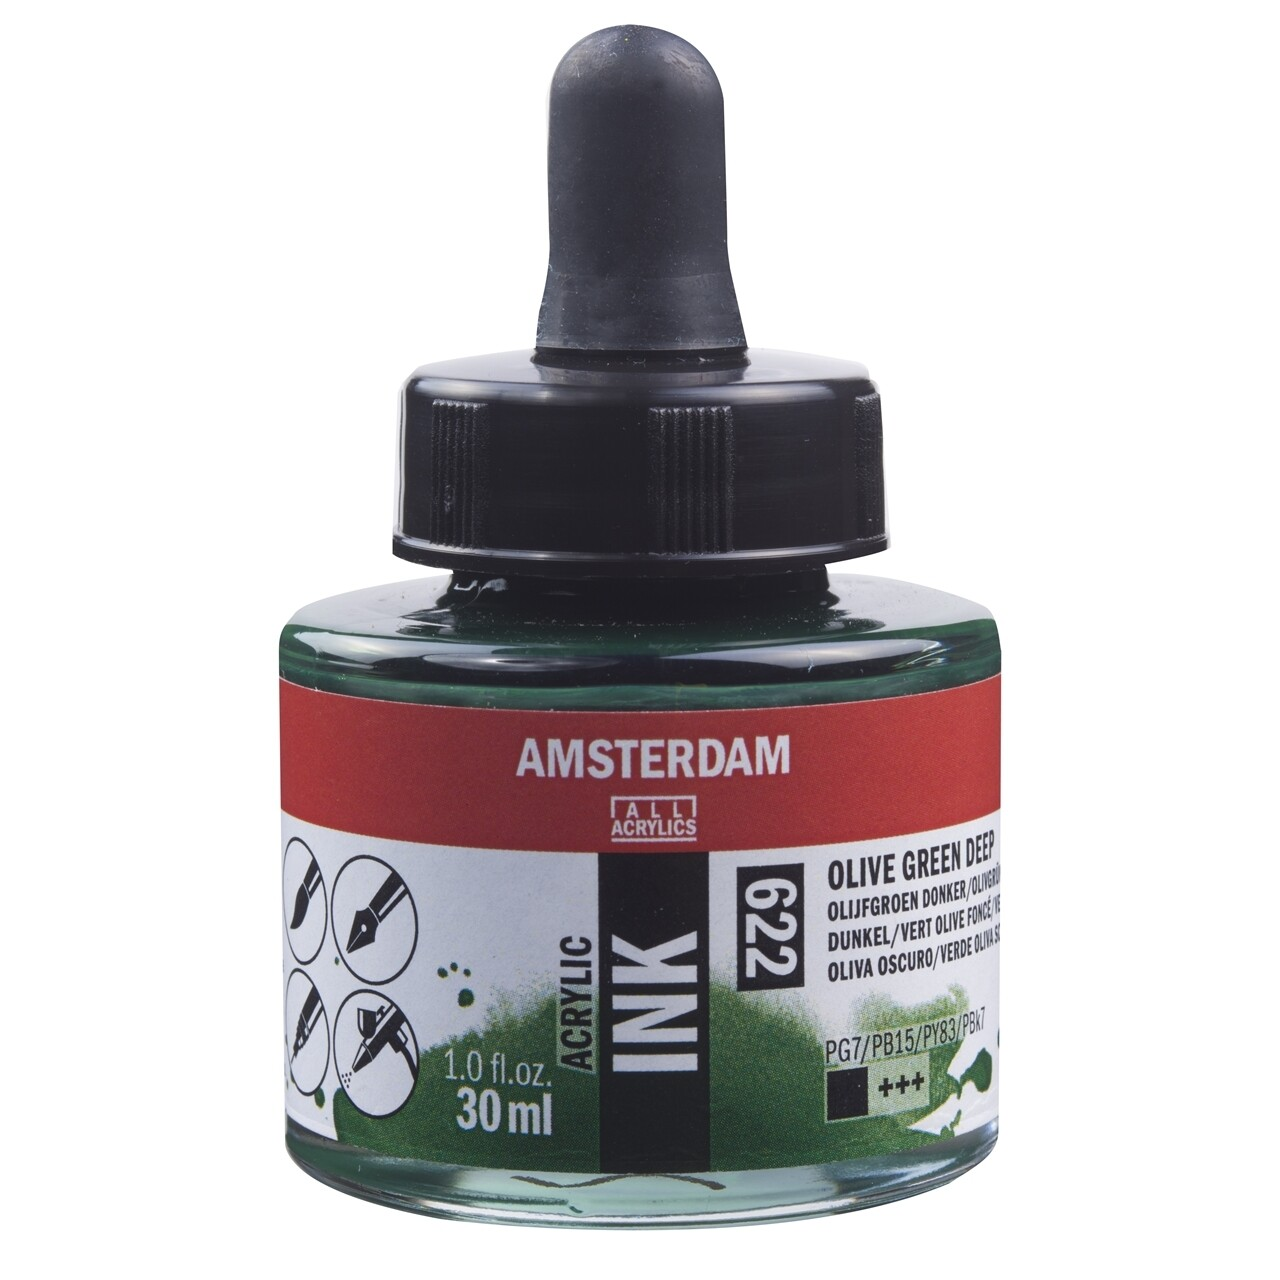 Amsterdam Acrylic Ink - Olive Green Deep